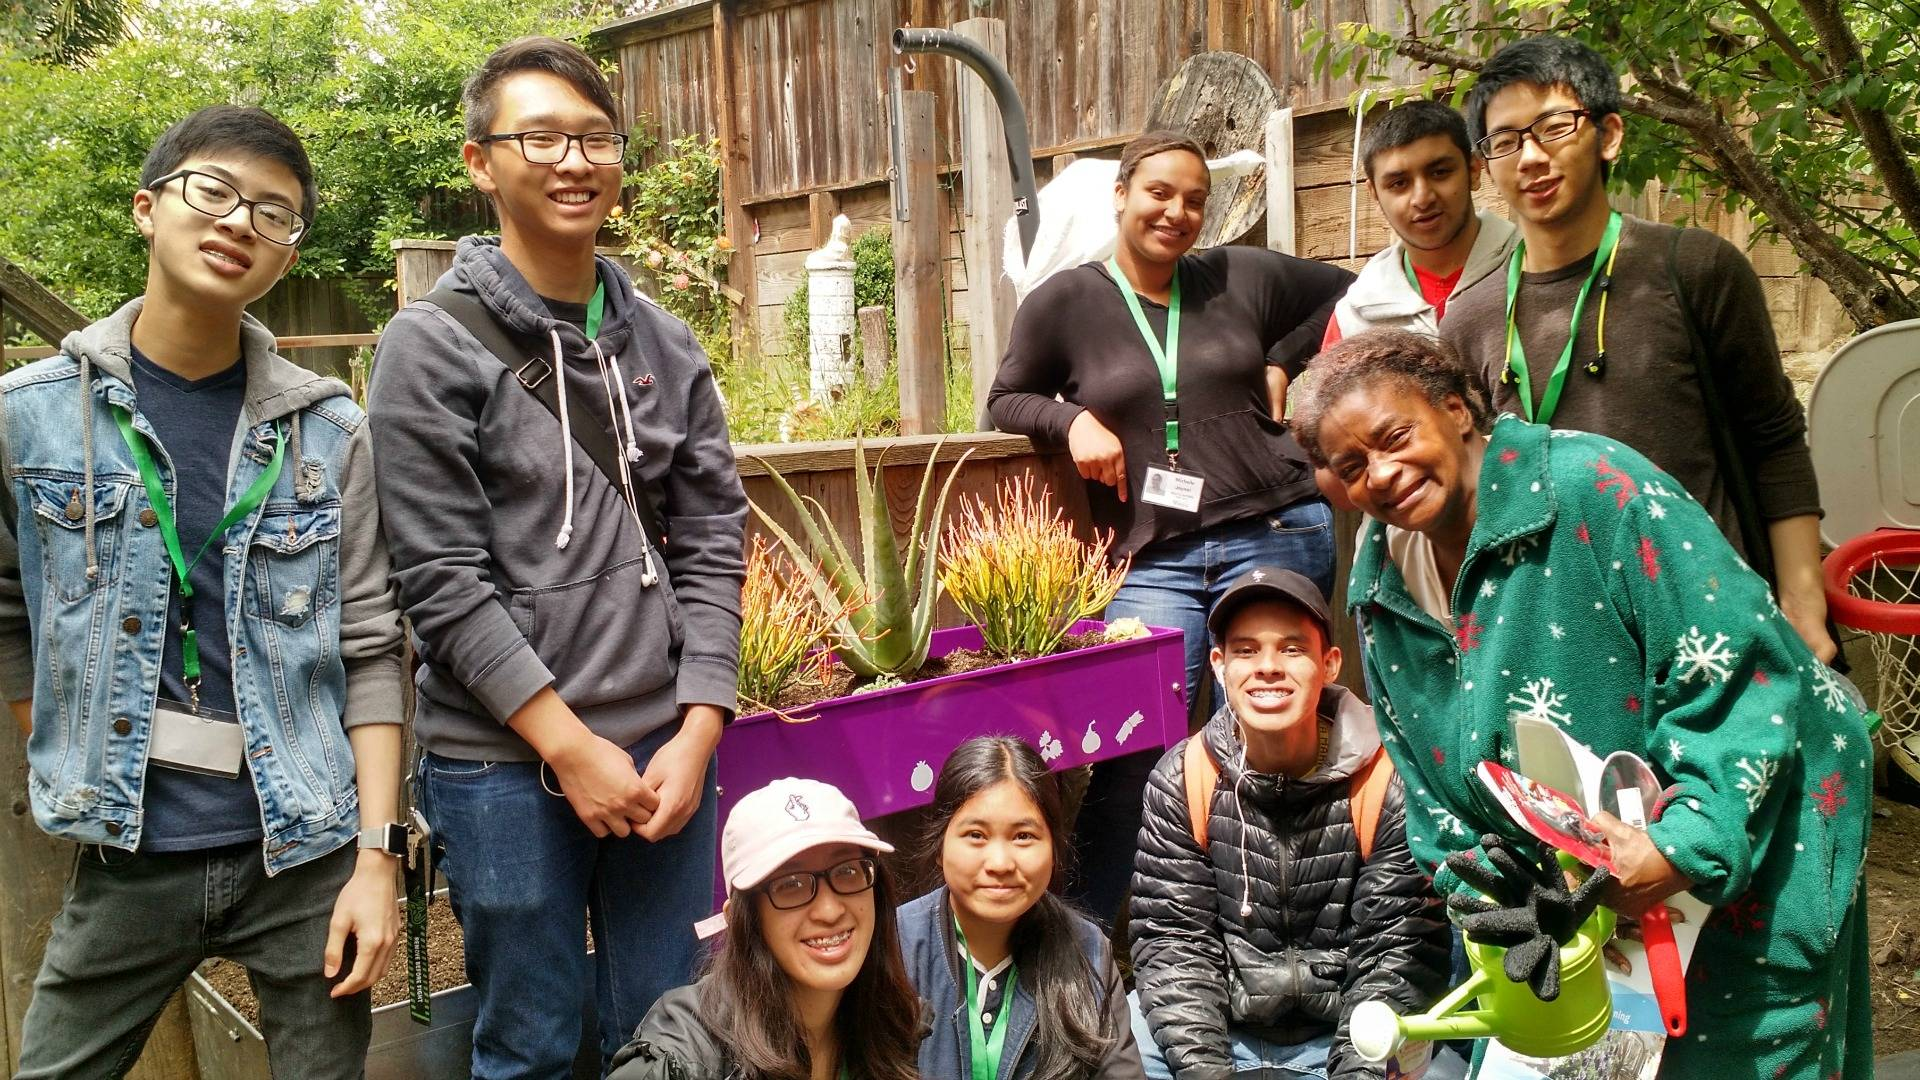 Participants in CommunityGrows' BEETS teen entrepreneur program learn how to build and maintain gardens, as well as other career development skills.  CommunityGrows